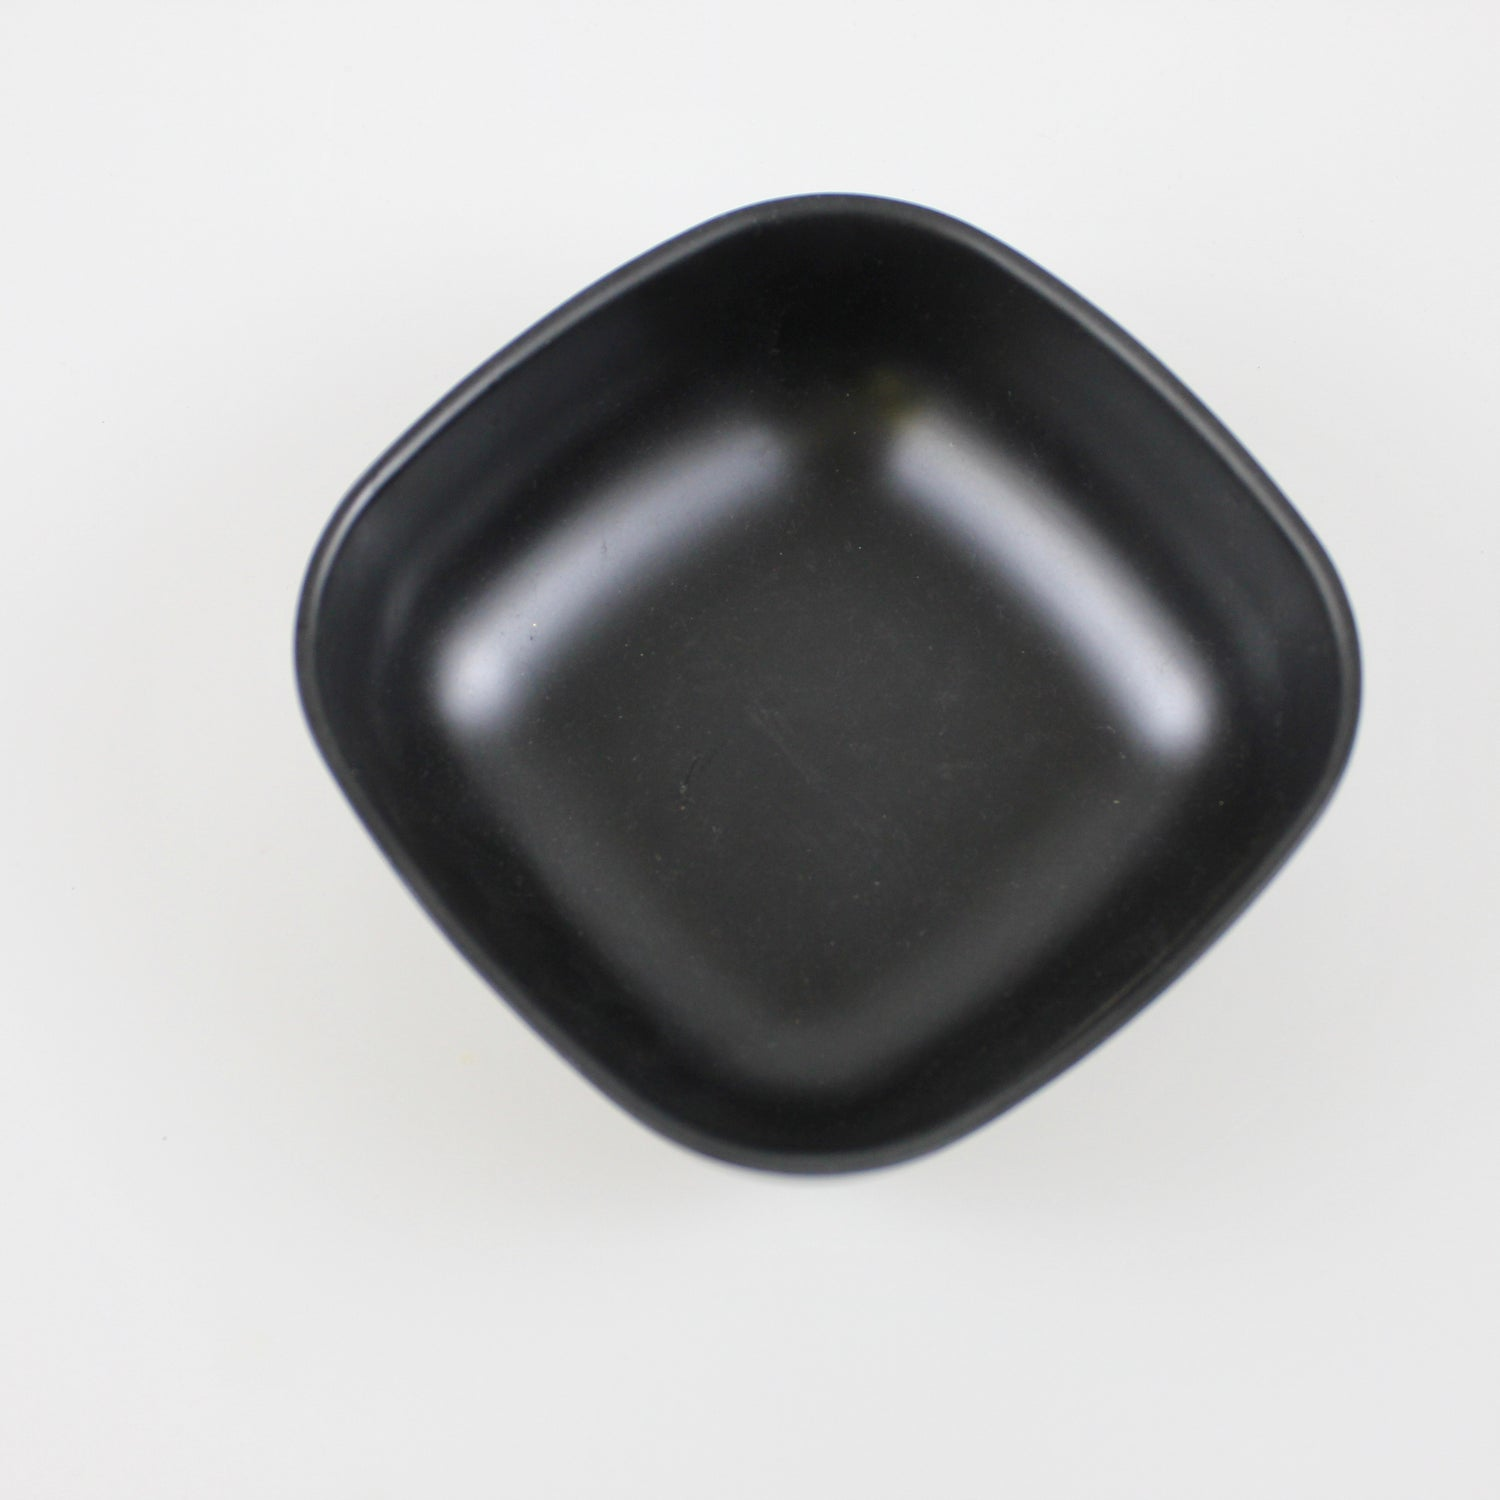 Ekobo Pasta / Salad Bowl Black